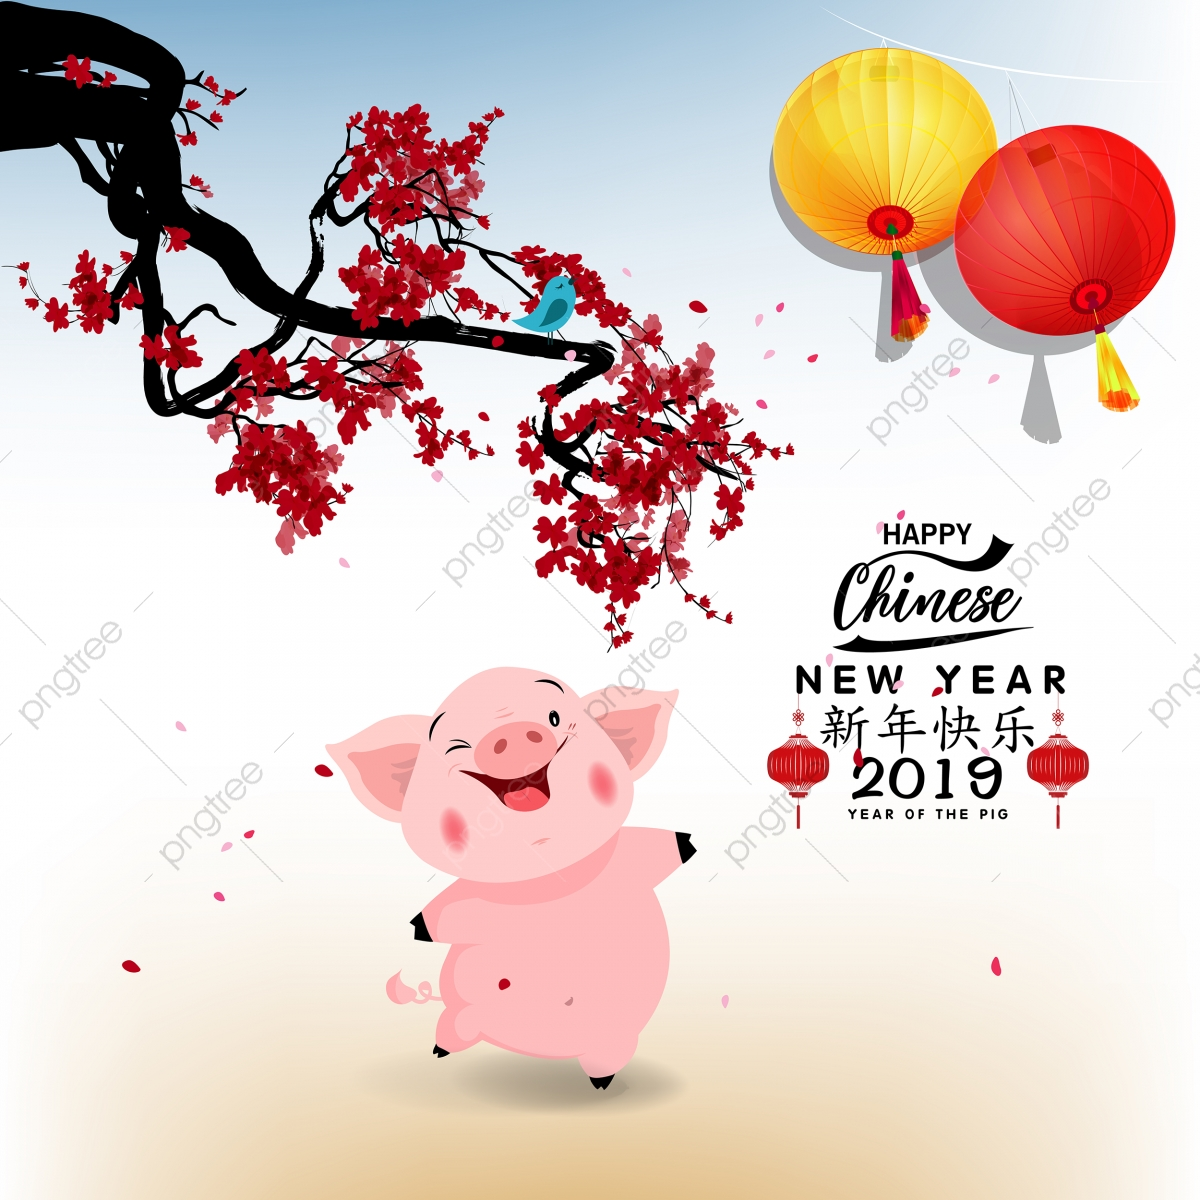 happy chinese new year 2019  year of the pig  lunar new